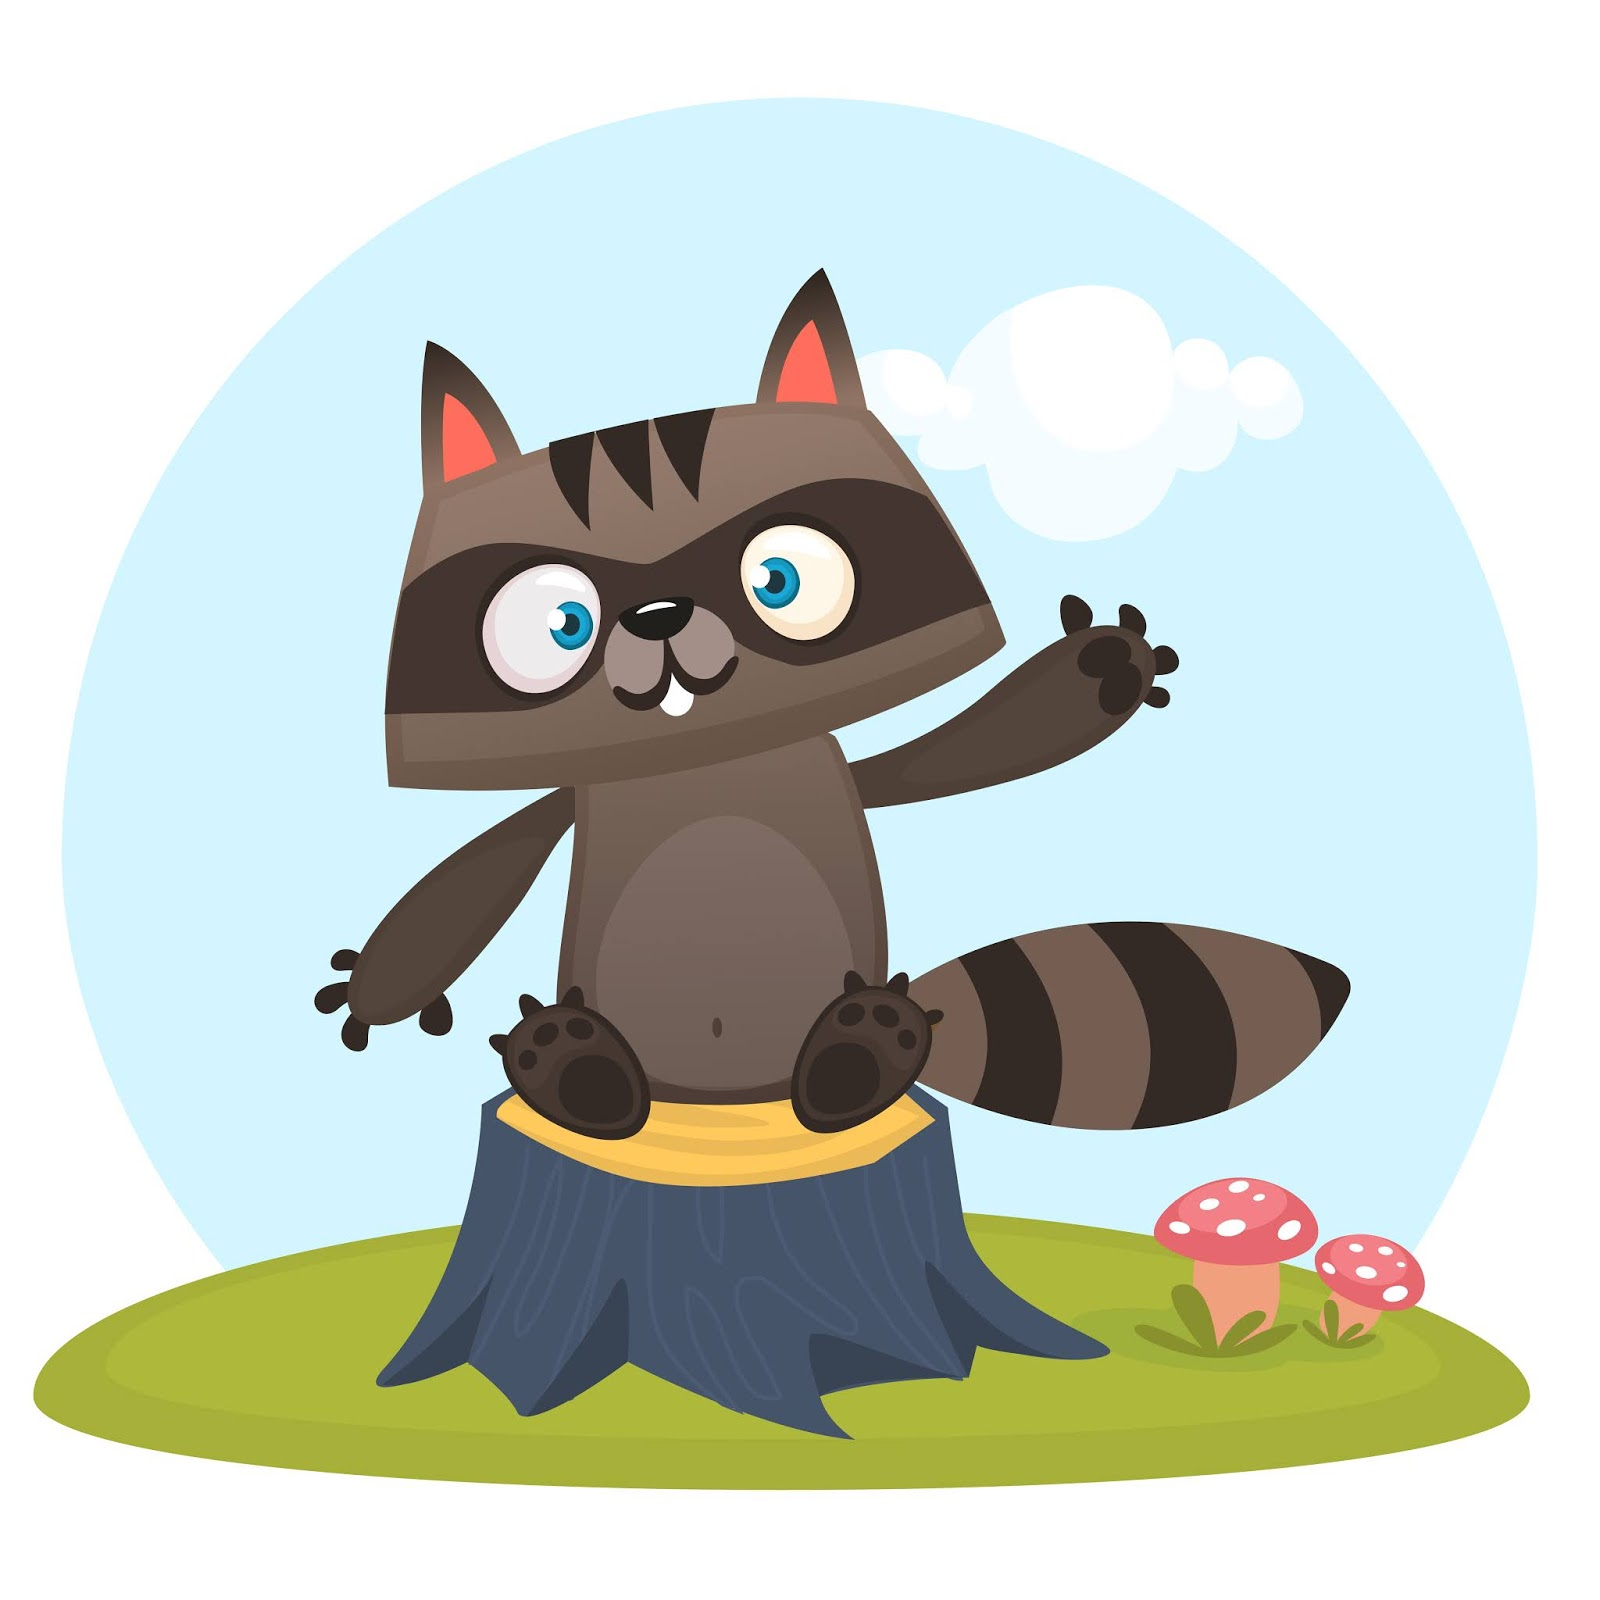 Cartoon Funny Raccoon Illustration Funny Free Download Vector CDR, AI, EPS and PNG Formats